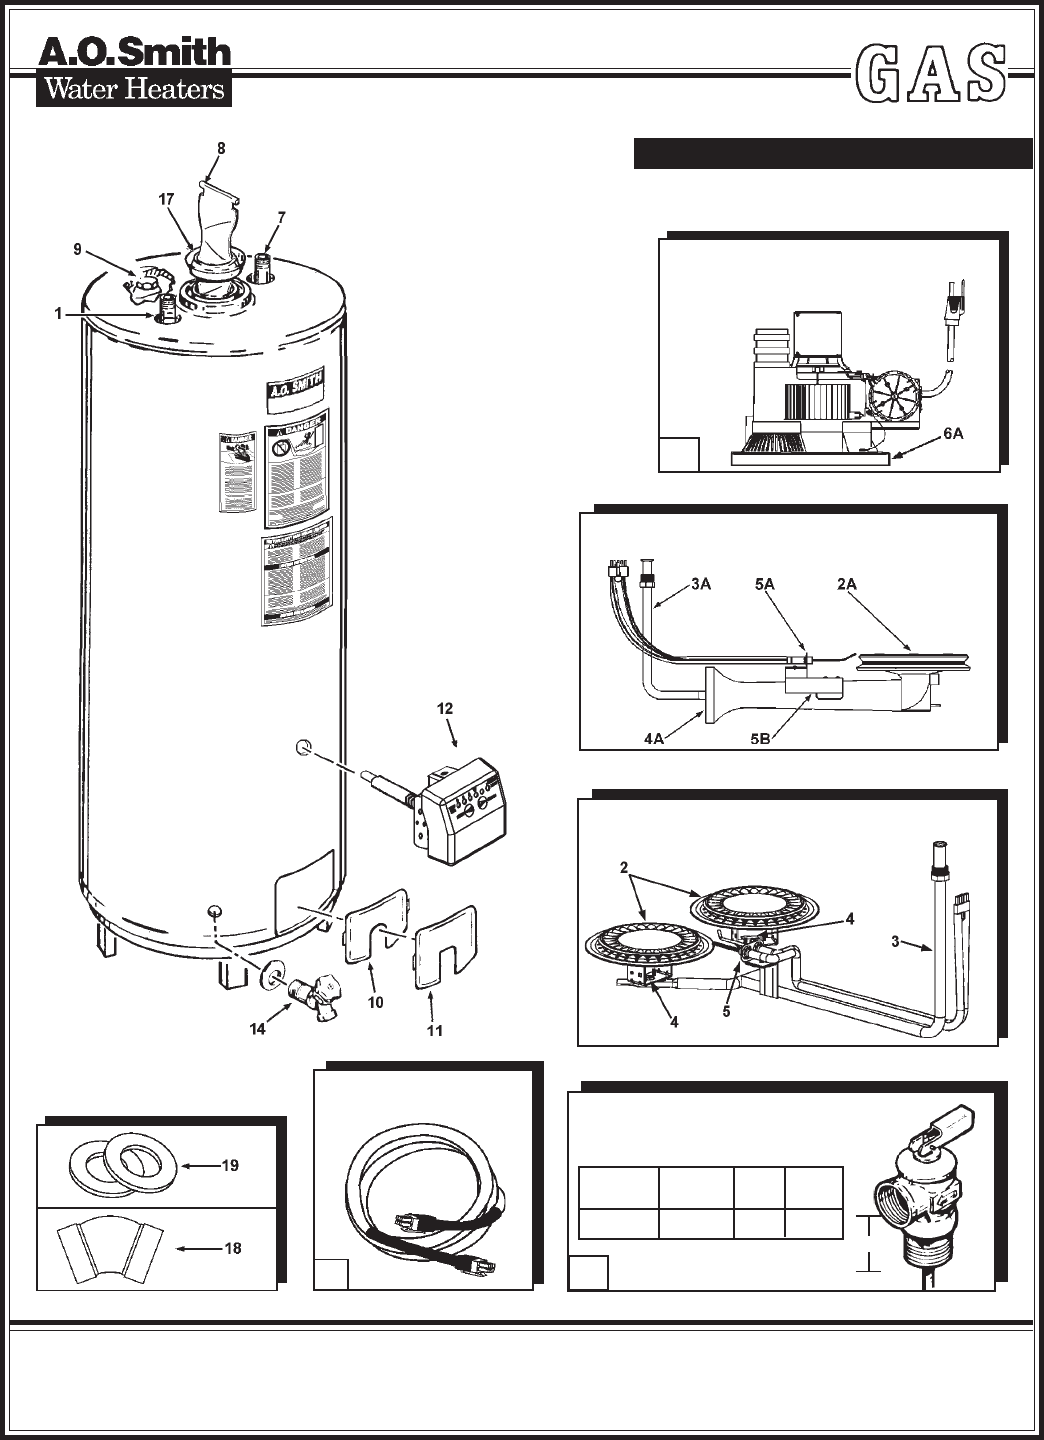 Parts For Ao Smith Water Heaters